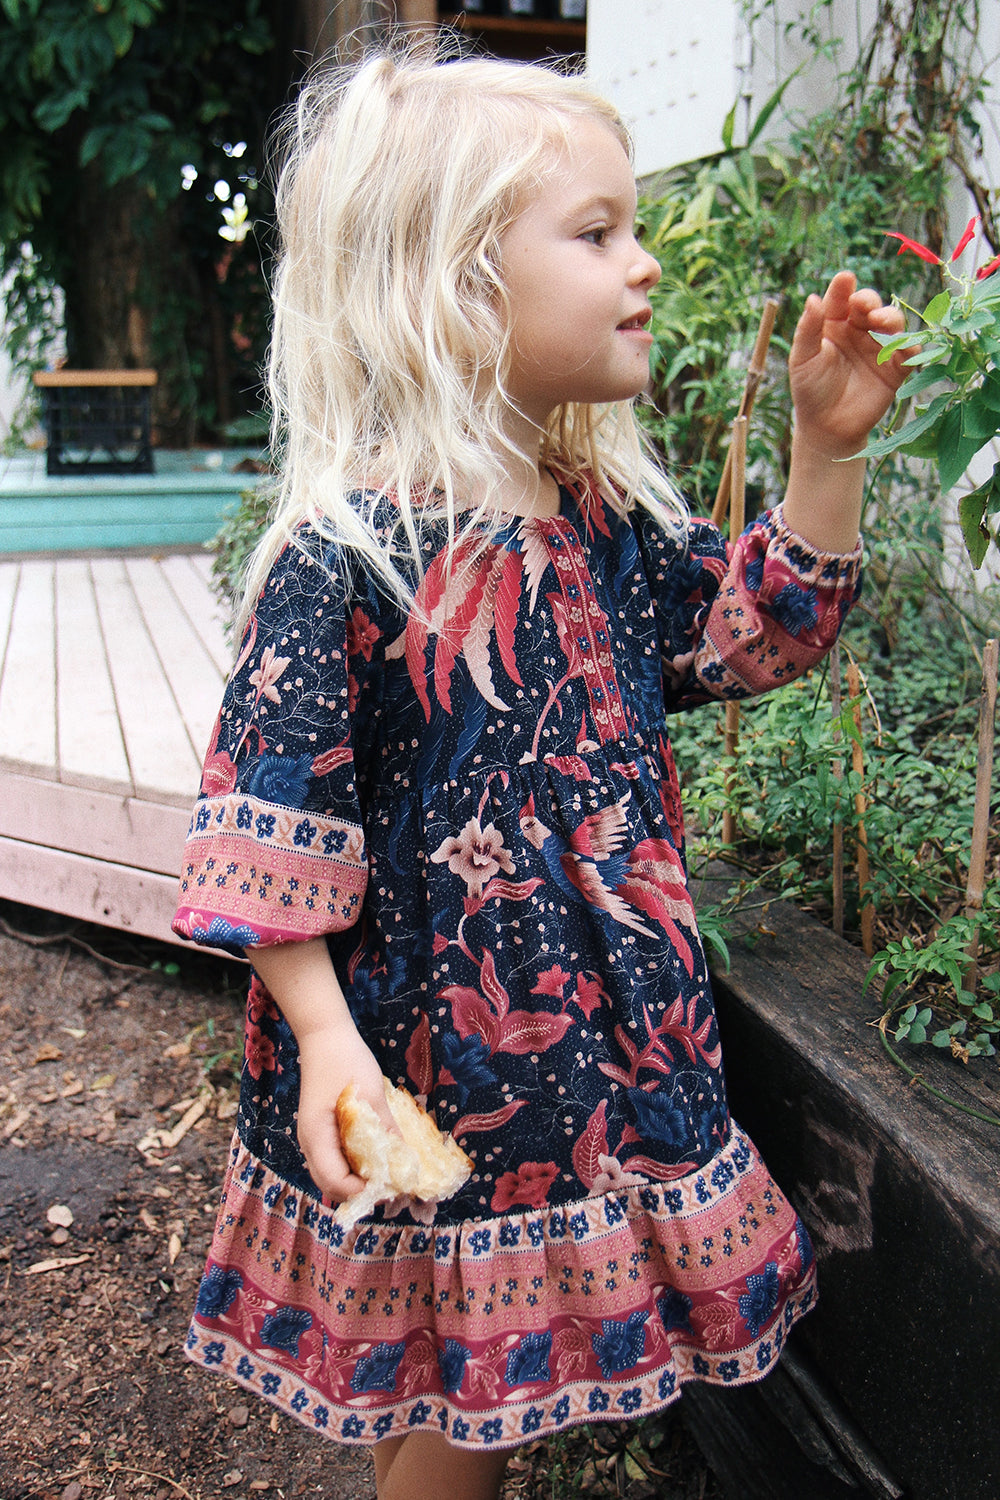 Ilona Kiddies Dress in Twilight